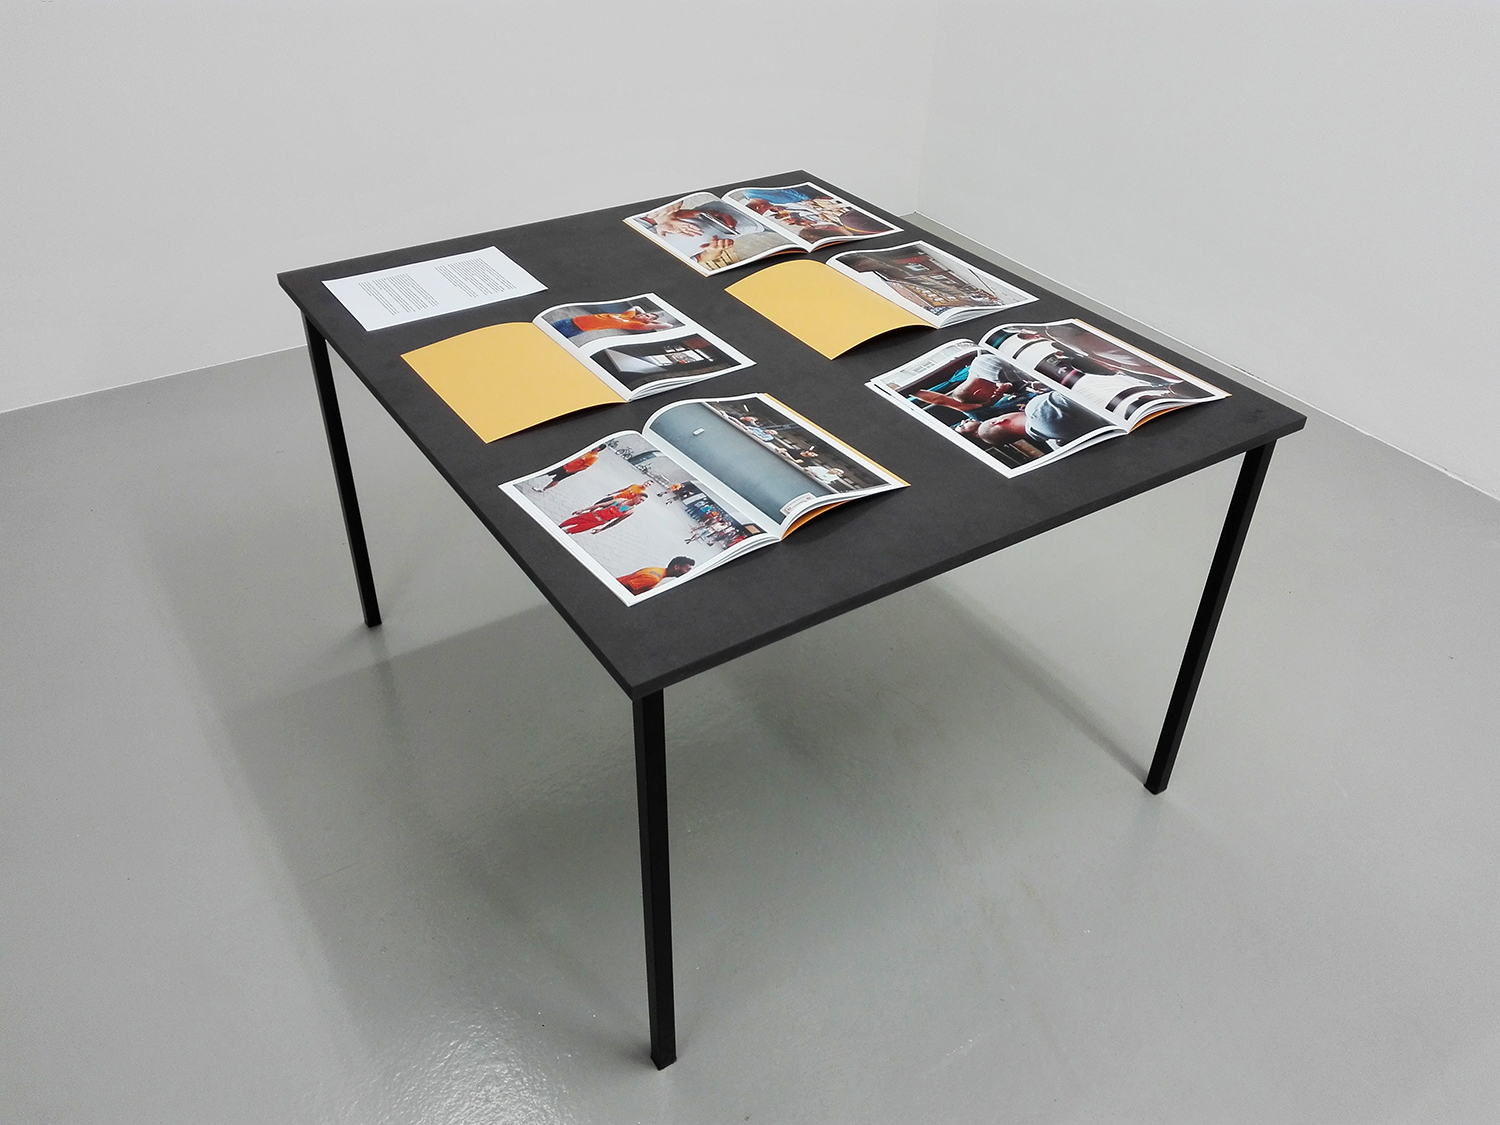 Exhibition view Tender Buttons, curated by Nadja Quante, Anna Voswinckel, Künstlerhaus Bremen 2019<br /> Aanwervingslokaal, 5 magazines and text on a table<br />